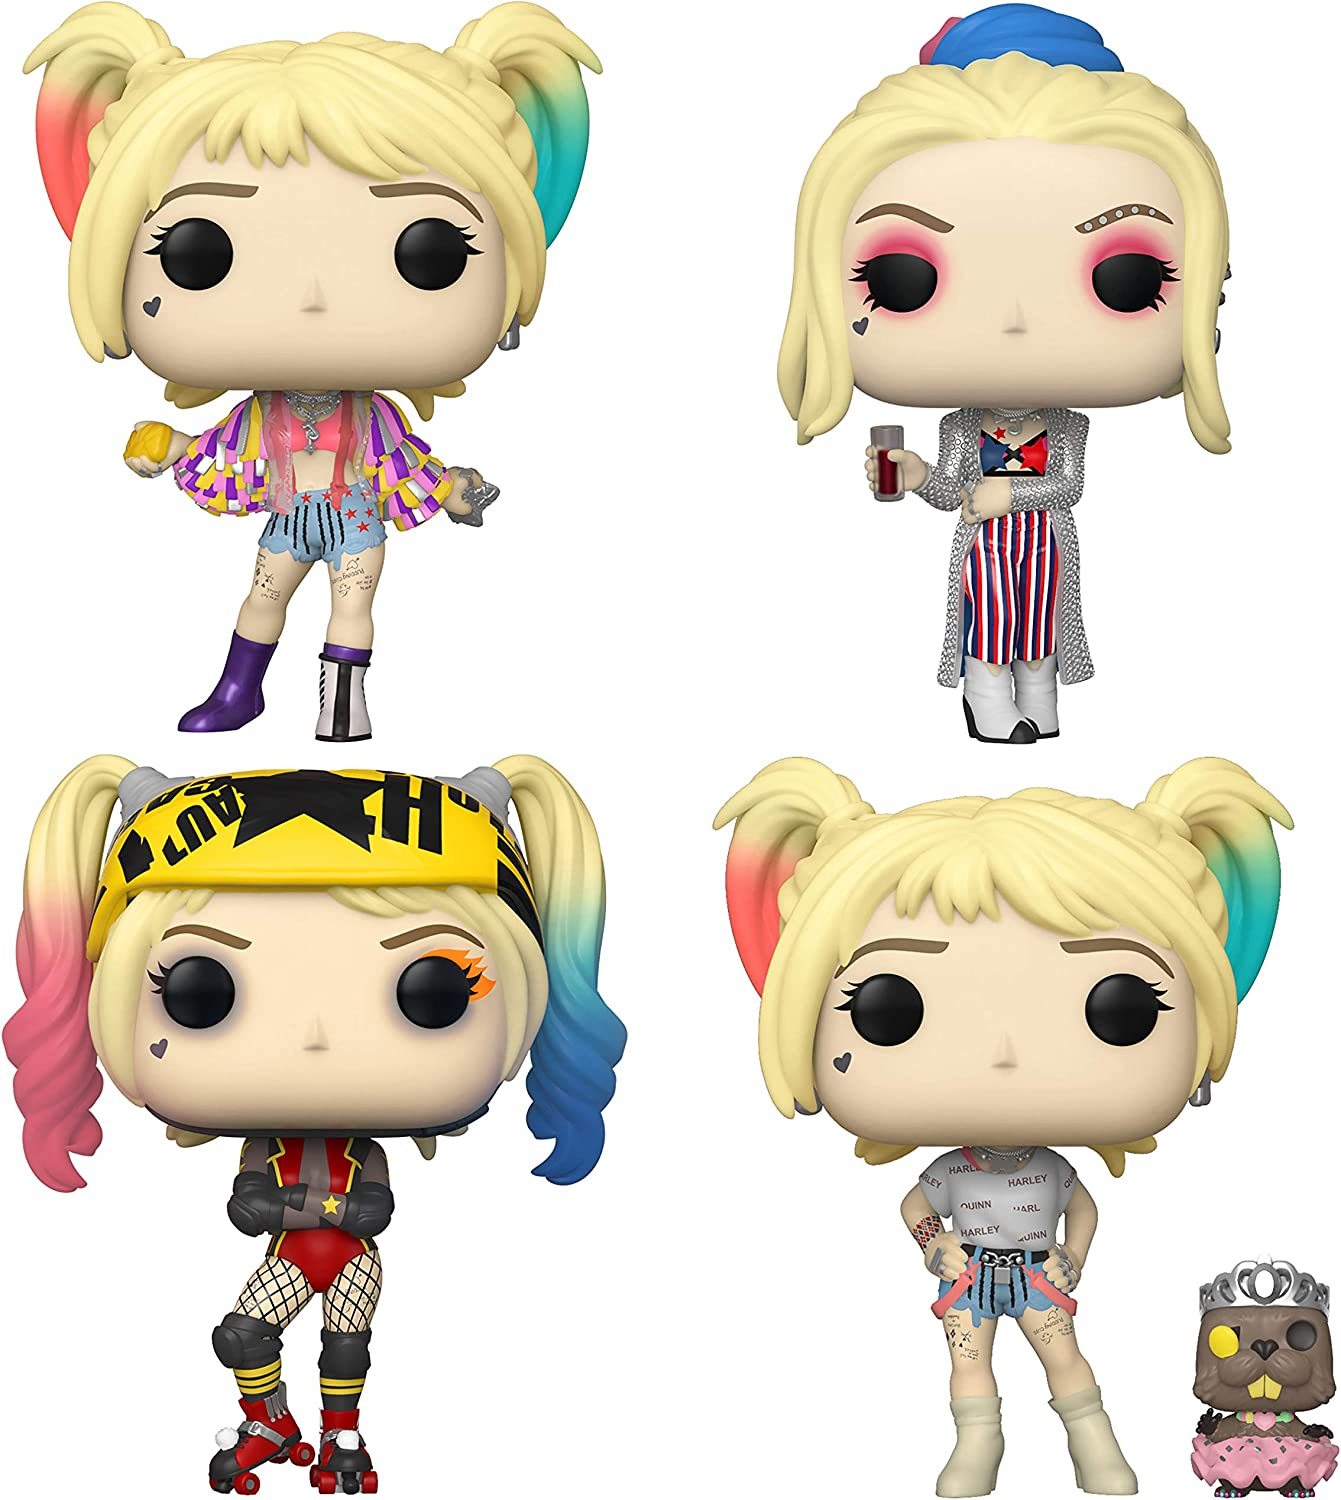 Amazon Com Funko Heroes Pop Birds Of Prey Collectors Set Harley Quinn With Caution Tape Jacket Club Look Roller Derby Harley Quinn With Bernie Toys Games